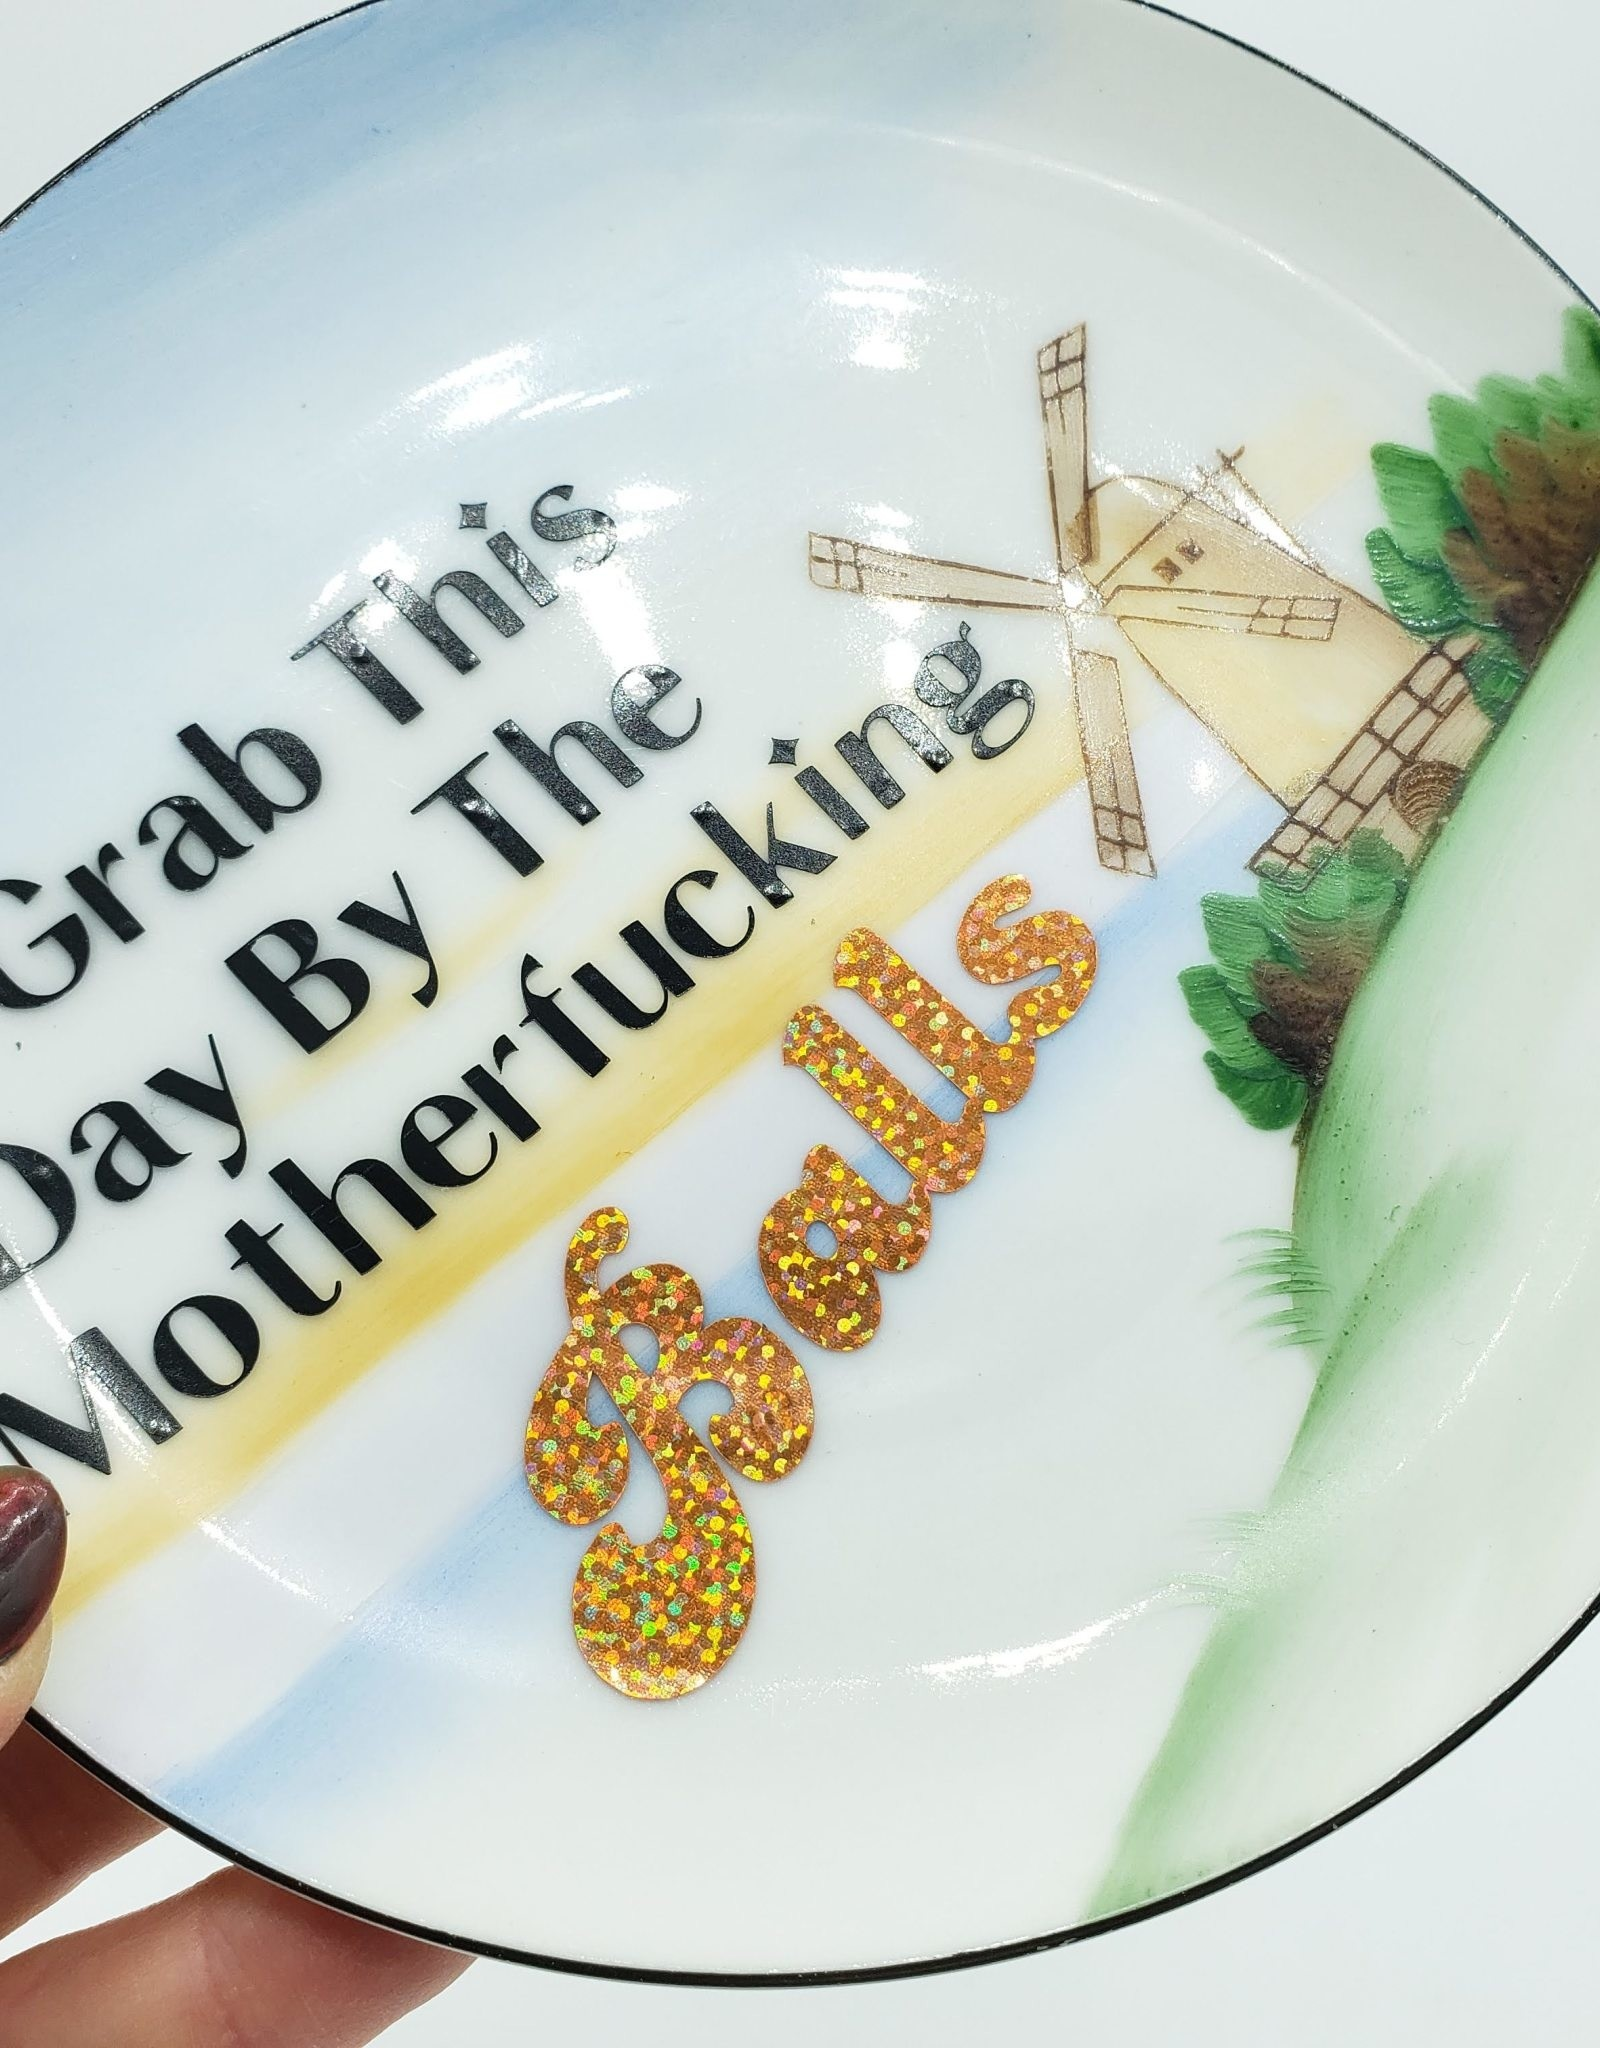 """Redux """"Grab this Day"""" - Vintage Upcycled Plate Art"""